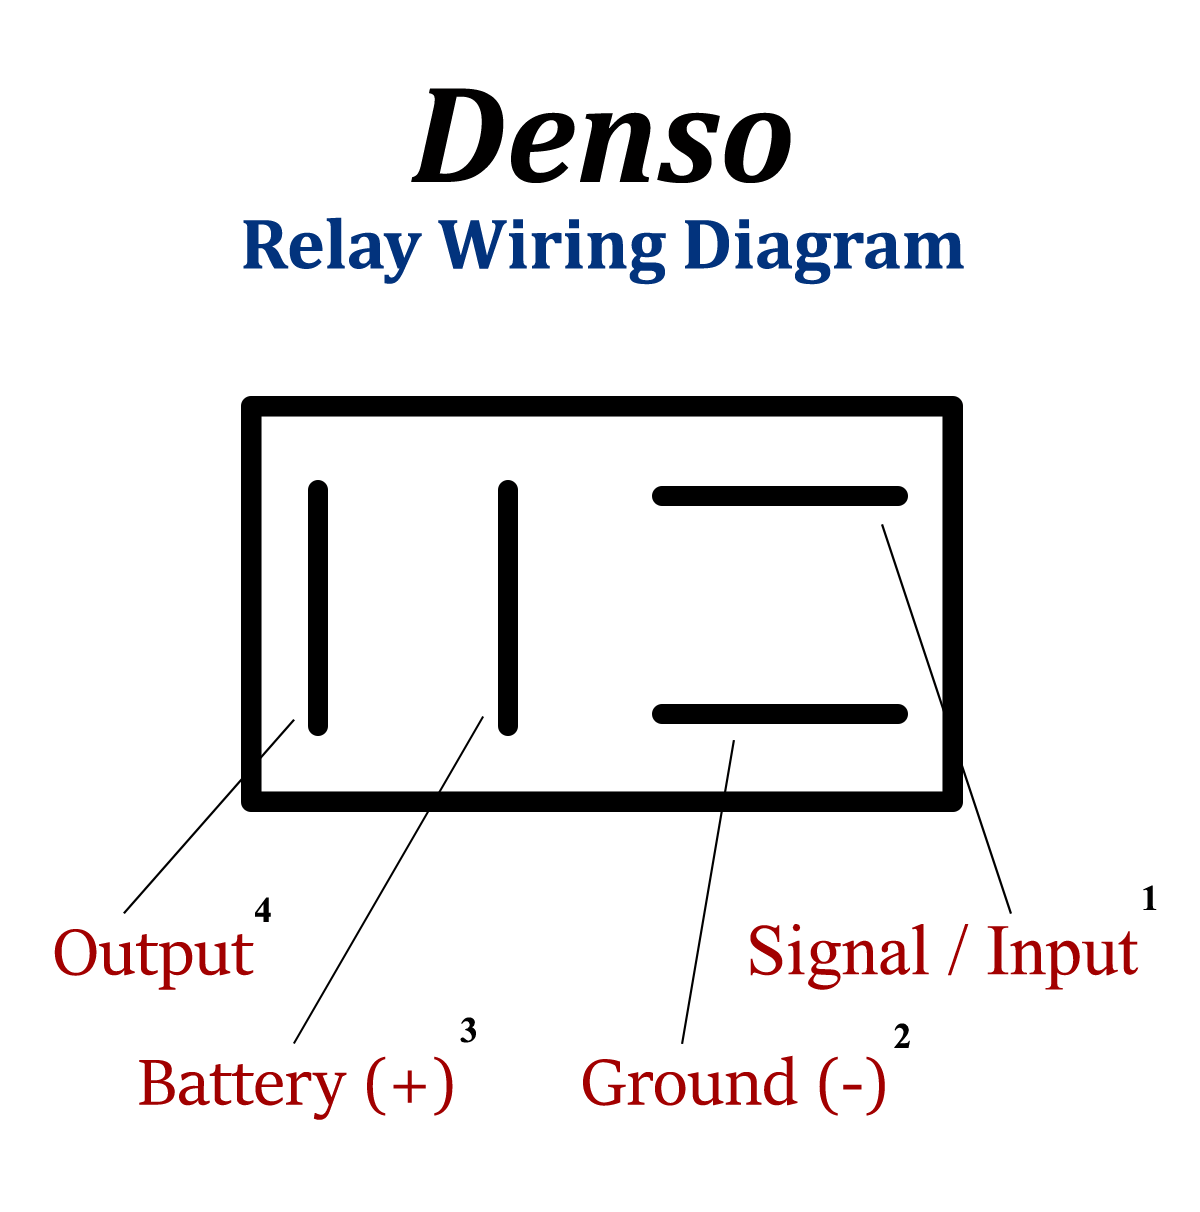 Denso Relay Wiring Diagram Benign Blog?resize\\\=297%2C300 wiring diagram for bello electric firep mod wiring wiring  at pacquiaovsvargaslive.co